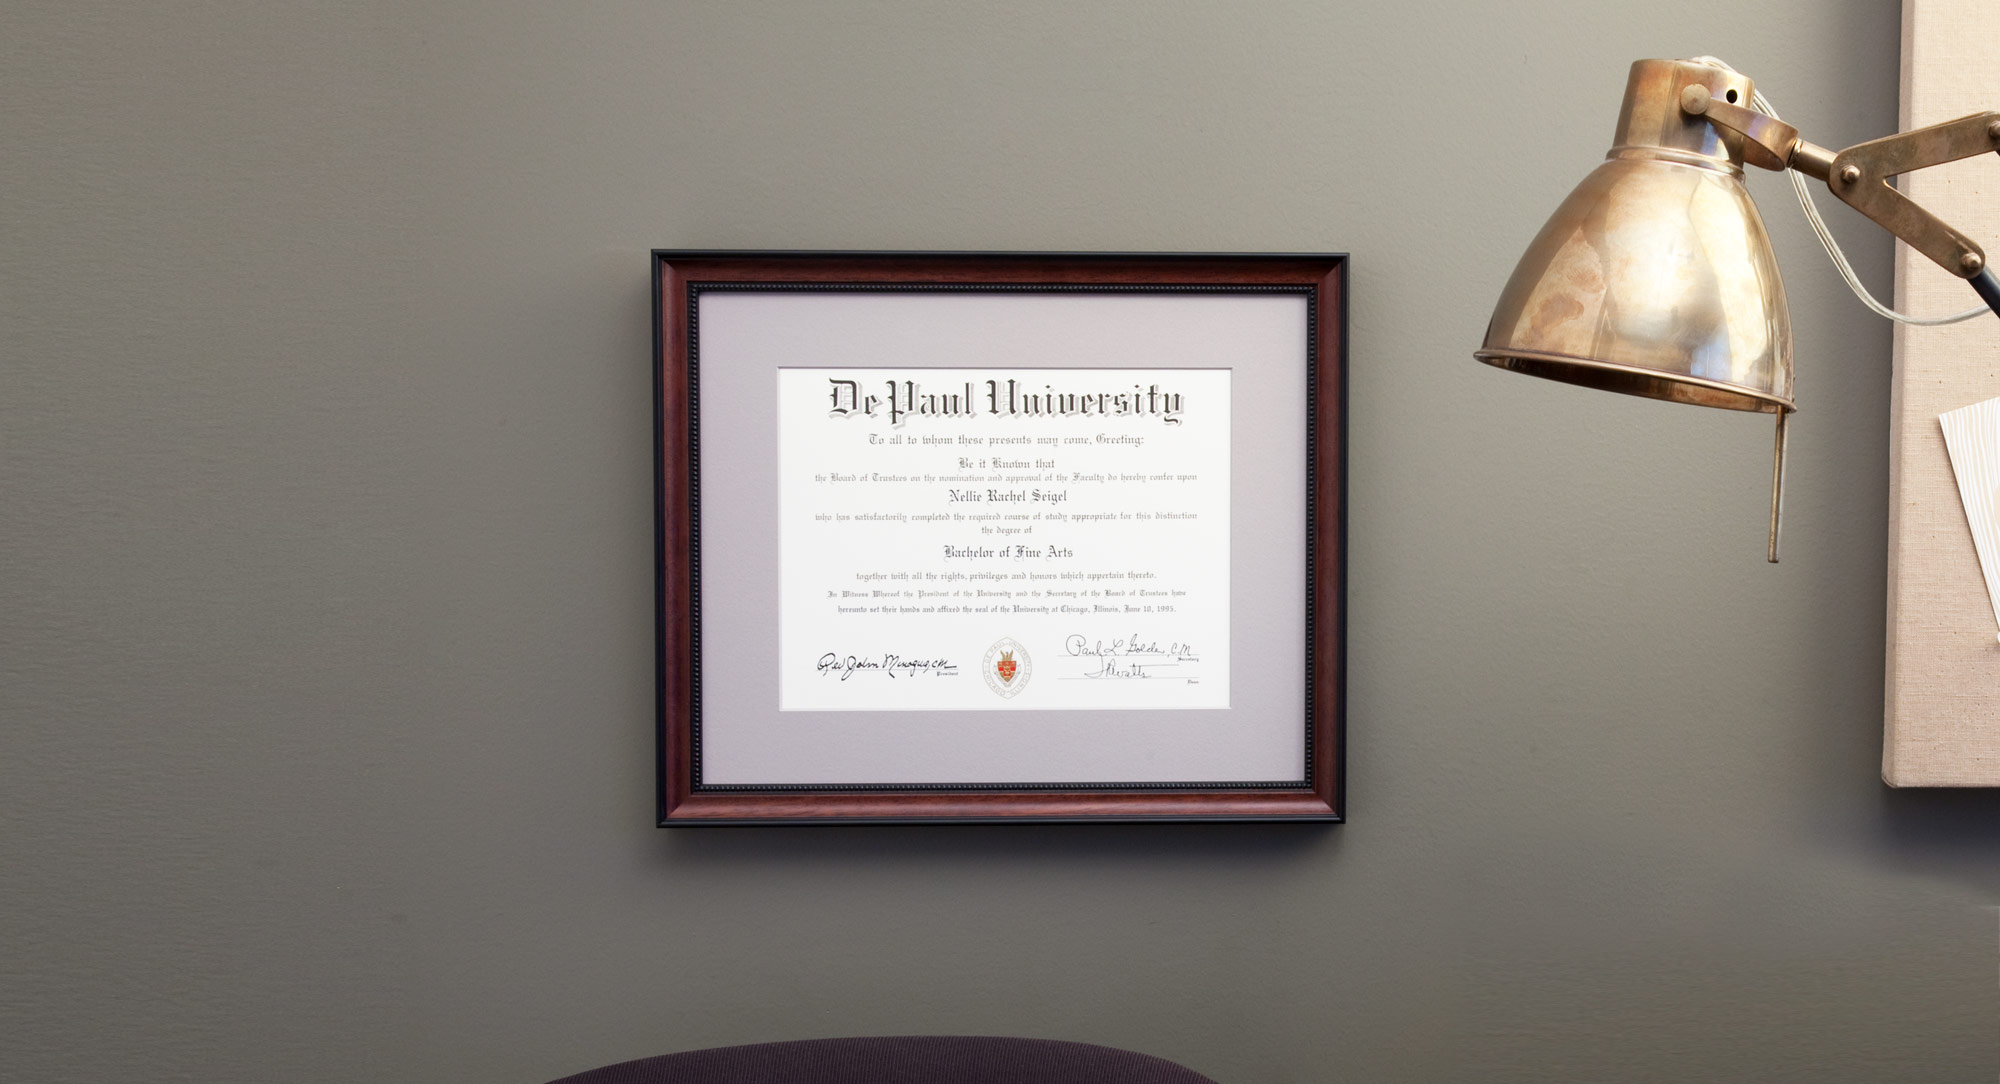 - Graduation SpecialYou spent enough earning that diploma, so frame it the smart way.Our custom diploma framing package includes a fine wood frame, single conservation-quality mat and UV-filtering glass. All for $99. It's a no-brainer.